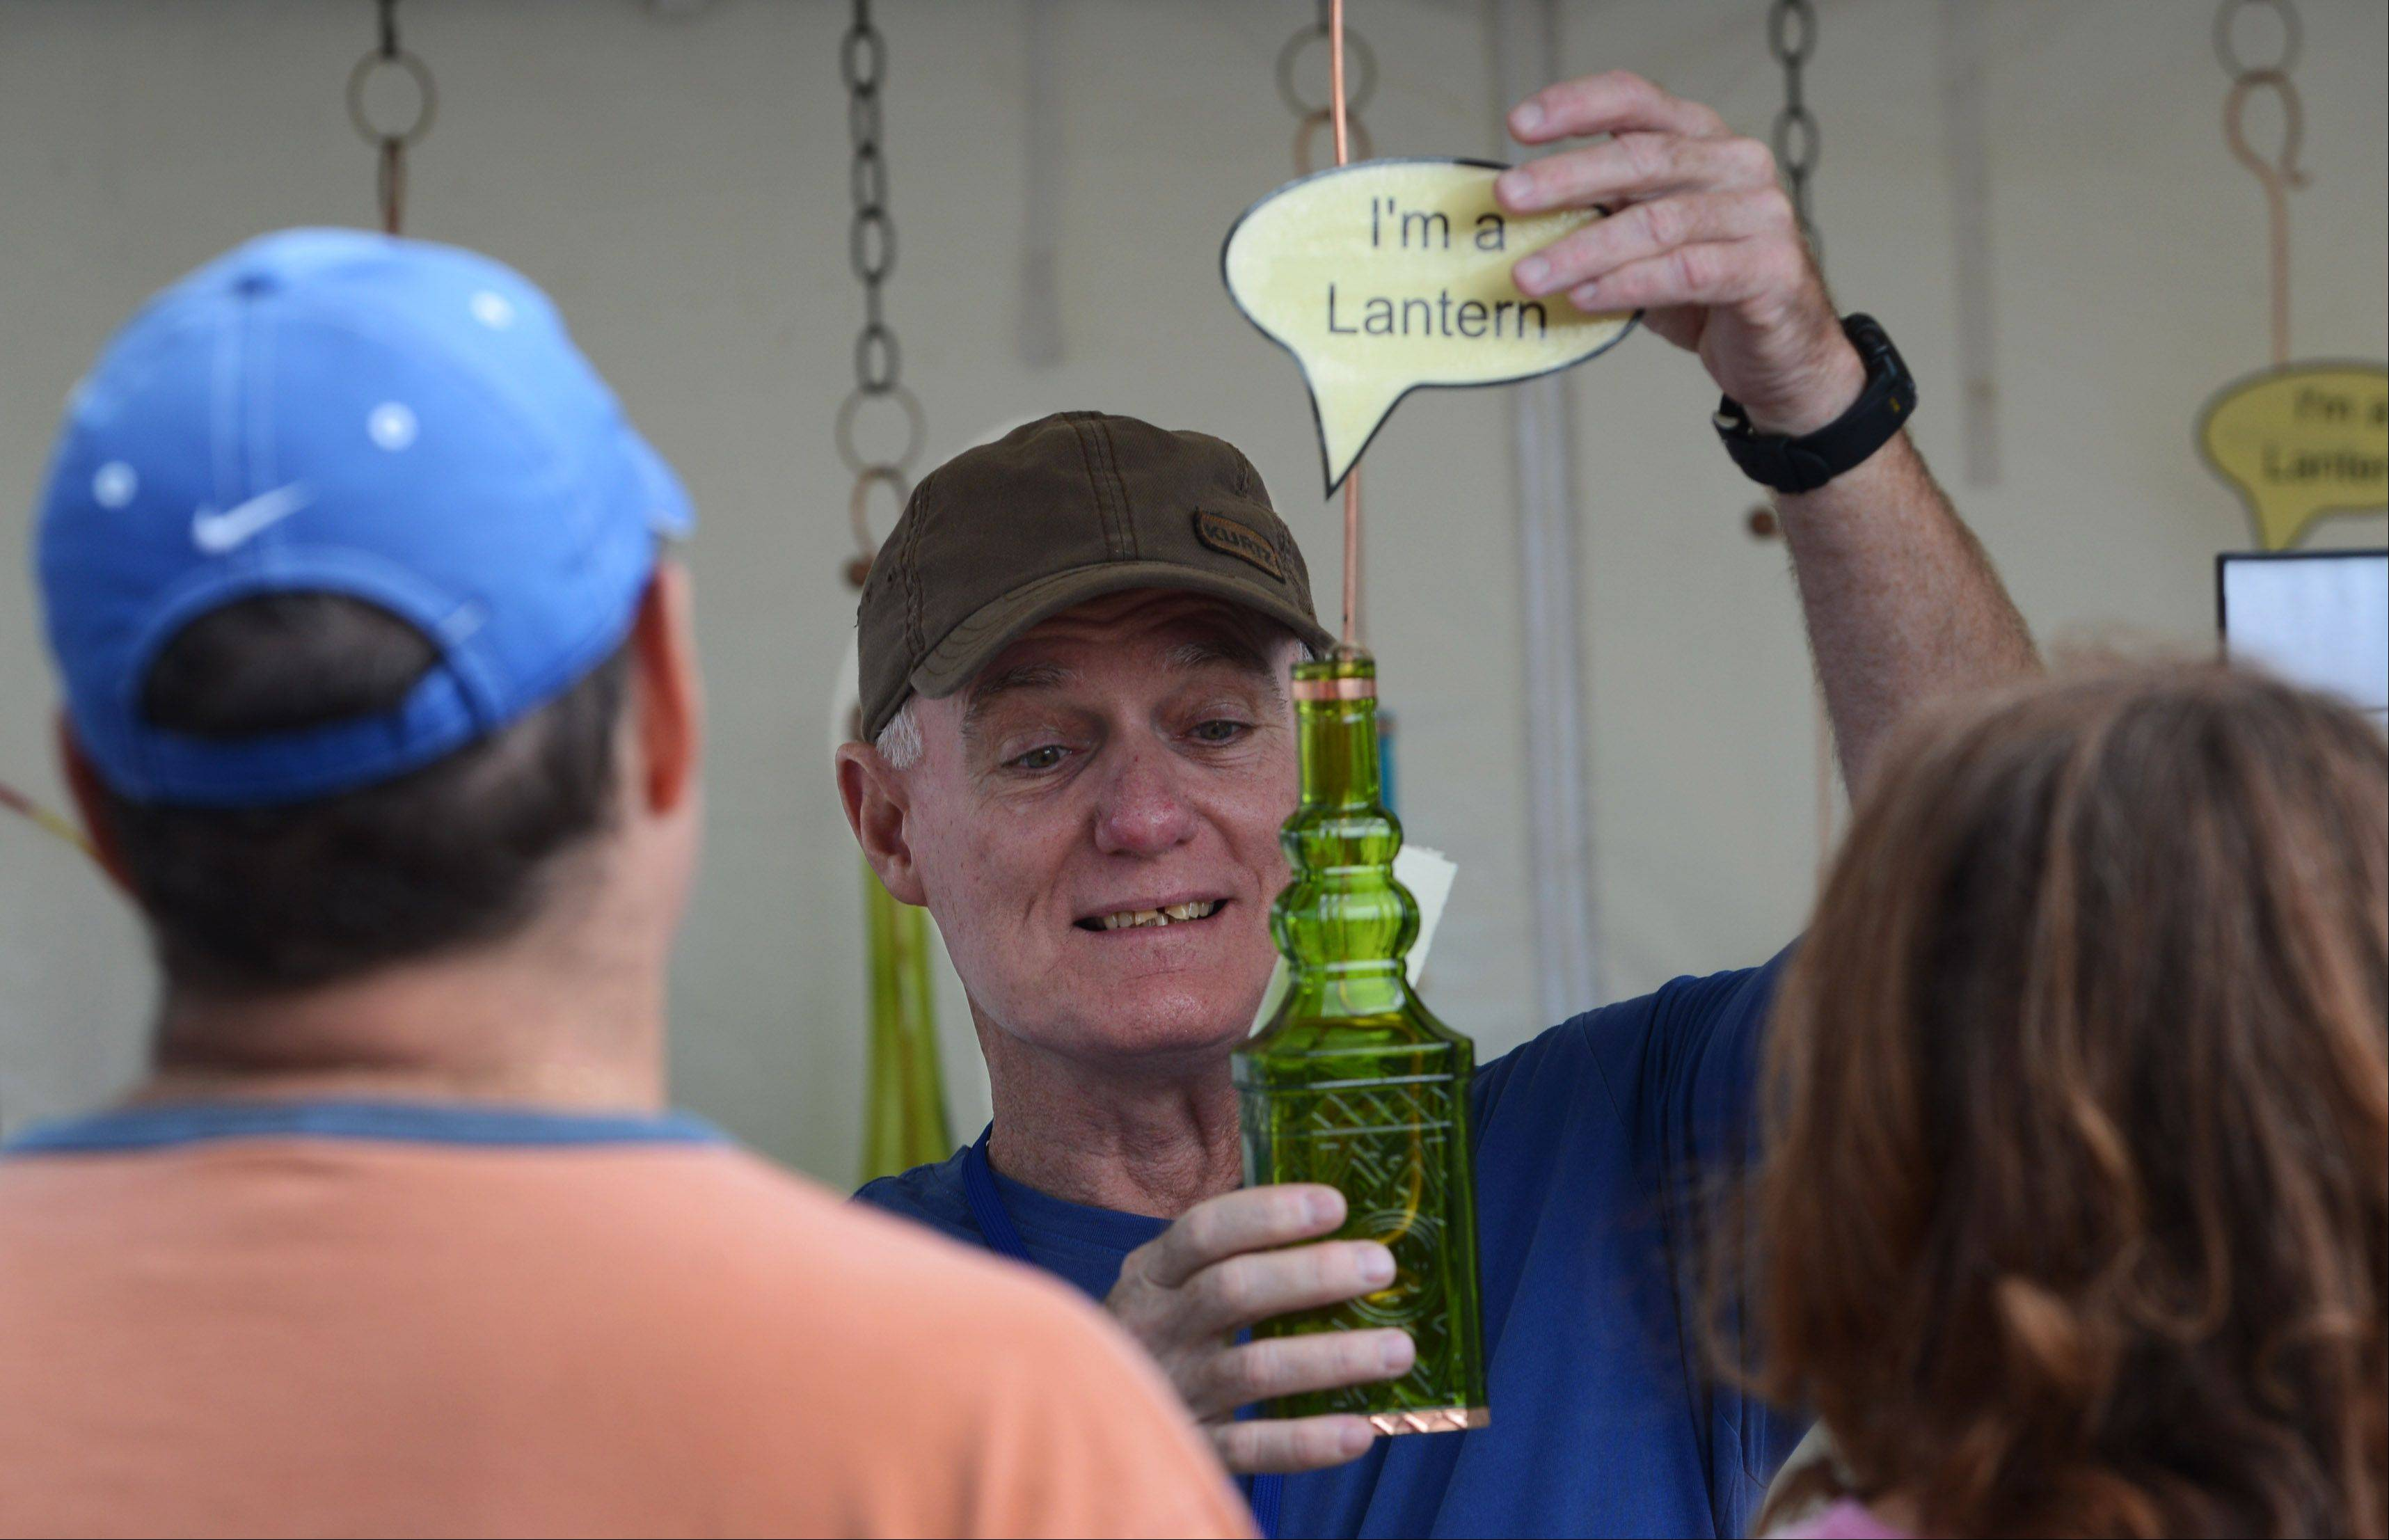 Artist Paul Van Duyn of Anderson, Ind. shows his lantern and bird feeders made out of bottles at the 59th Annual Art Fair on the Square on Monday in downtown Lake Forest.